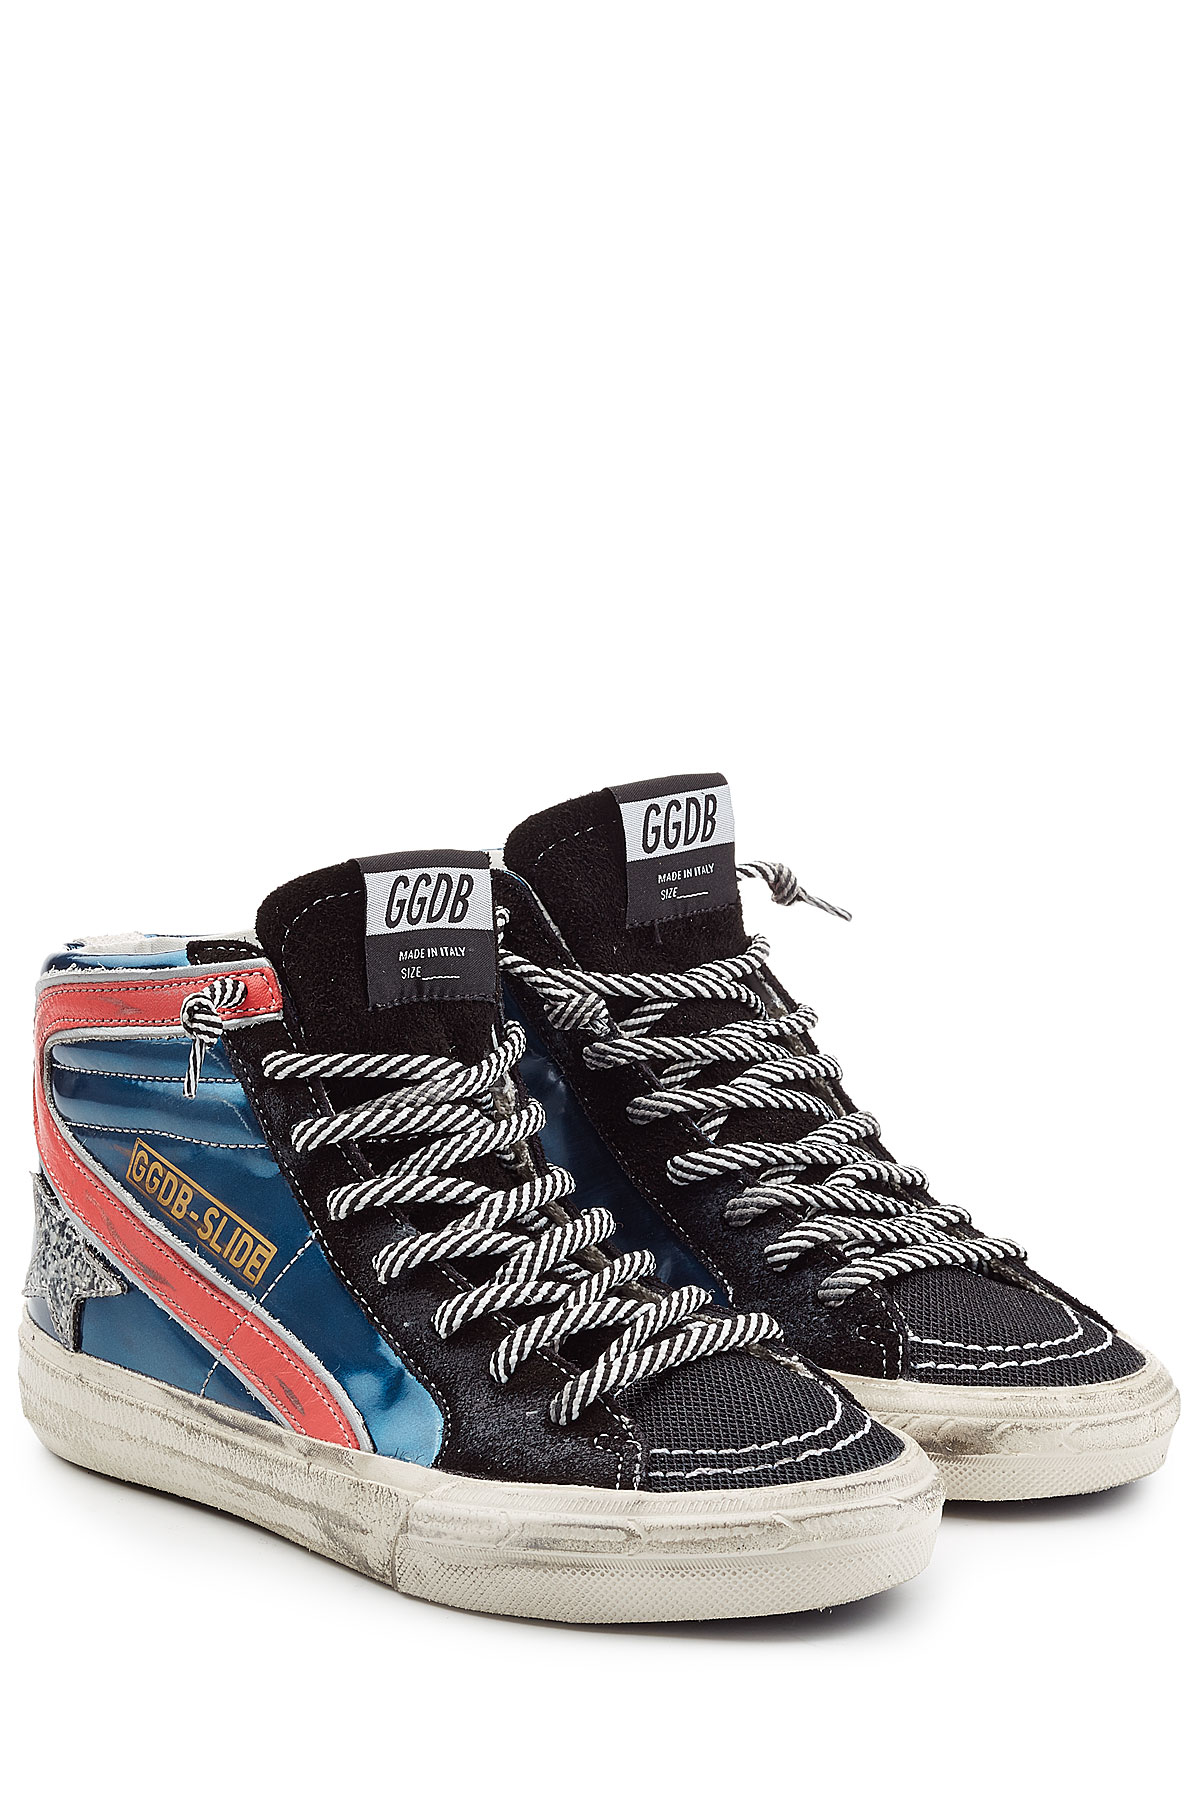 Golden Goose Deluxe Brand Leather High Top Sneakers In